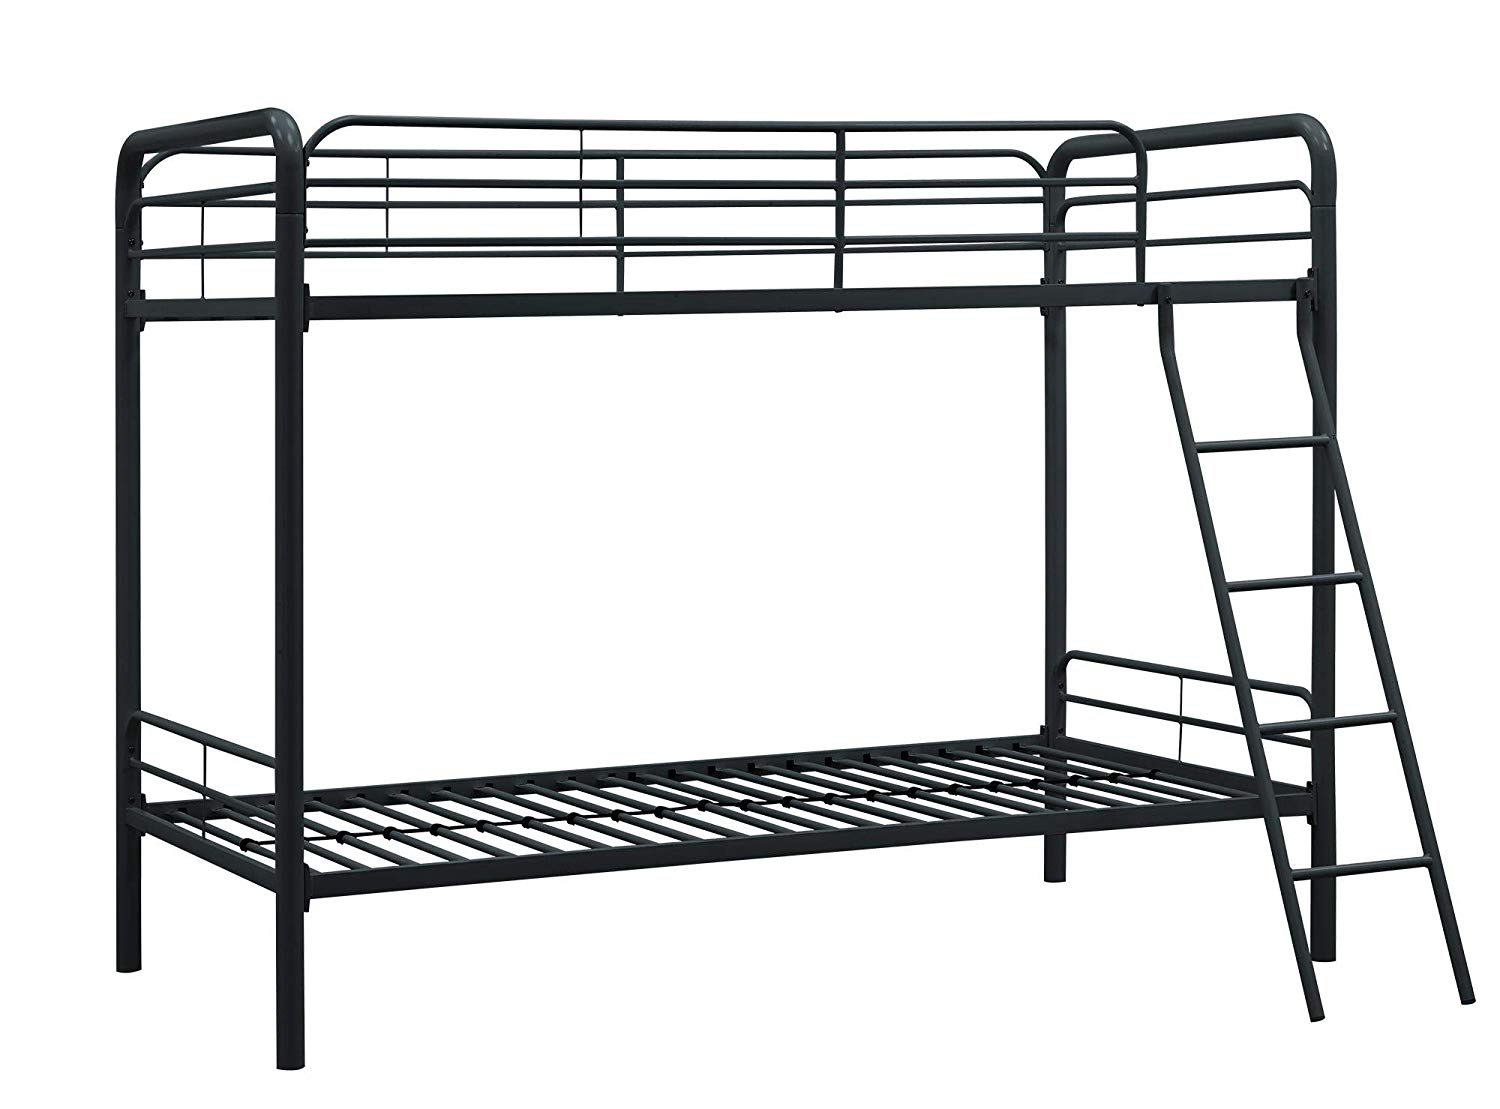 Top 10 Best Bunk Beds In 2019 The Double Check